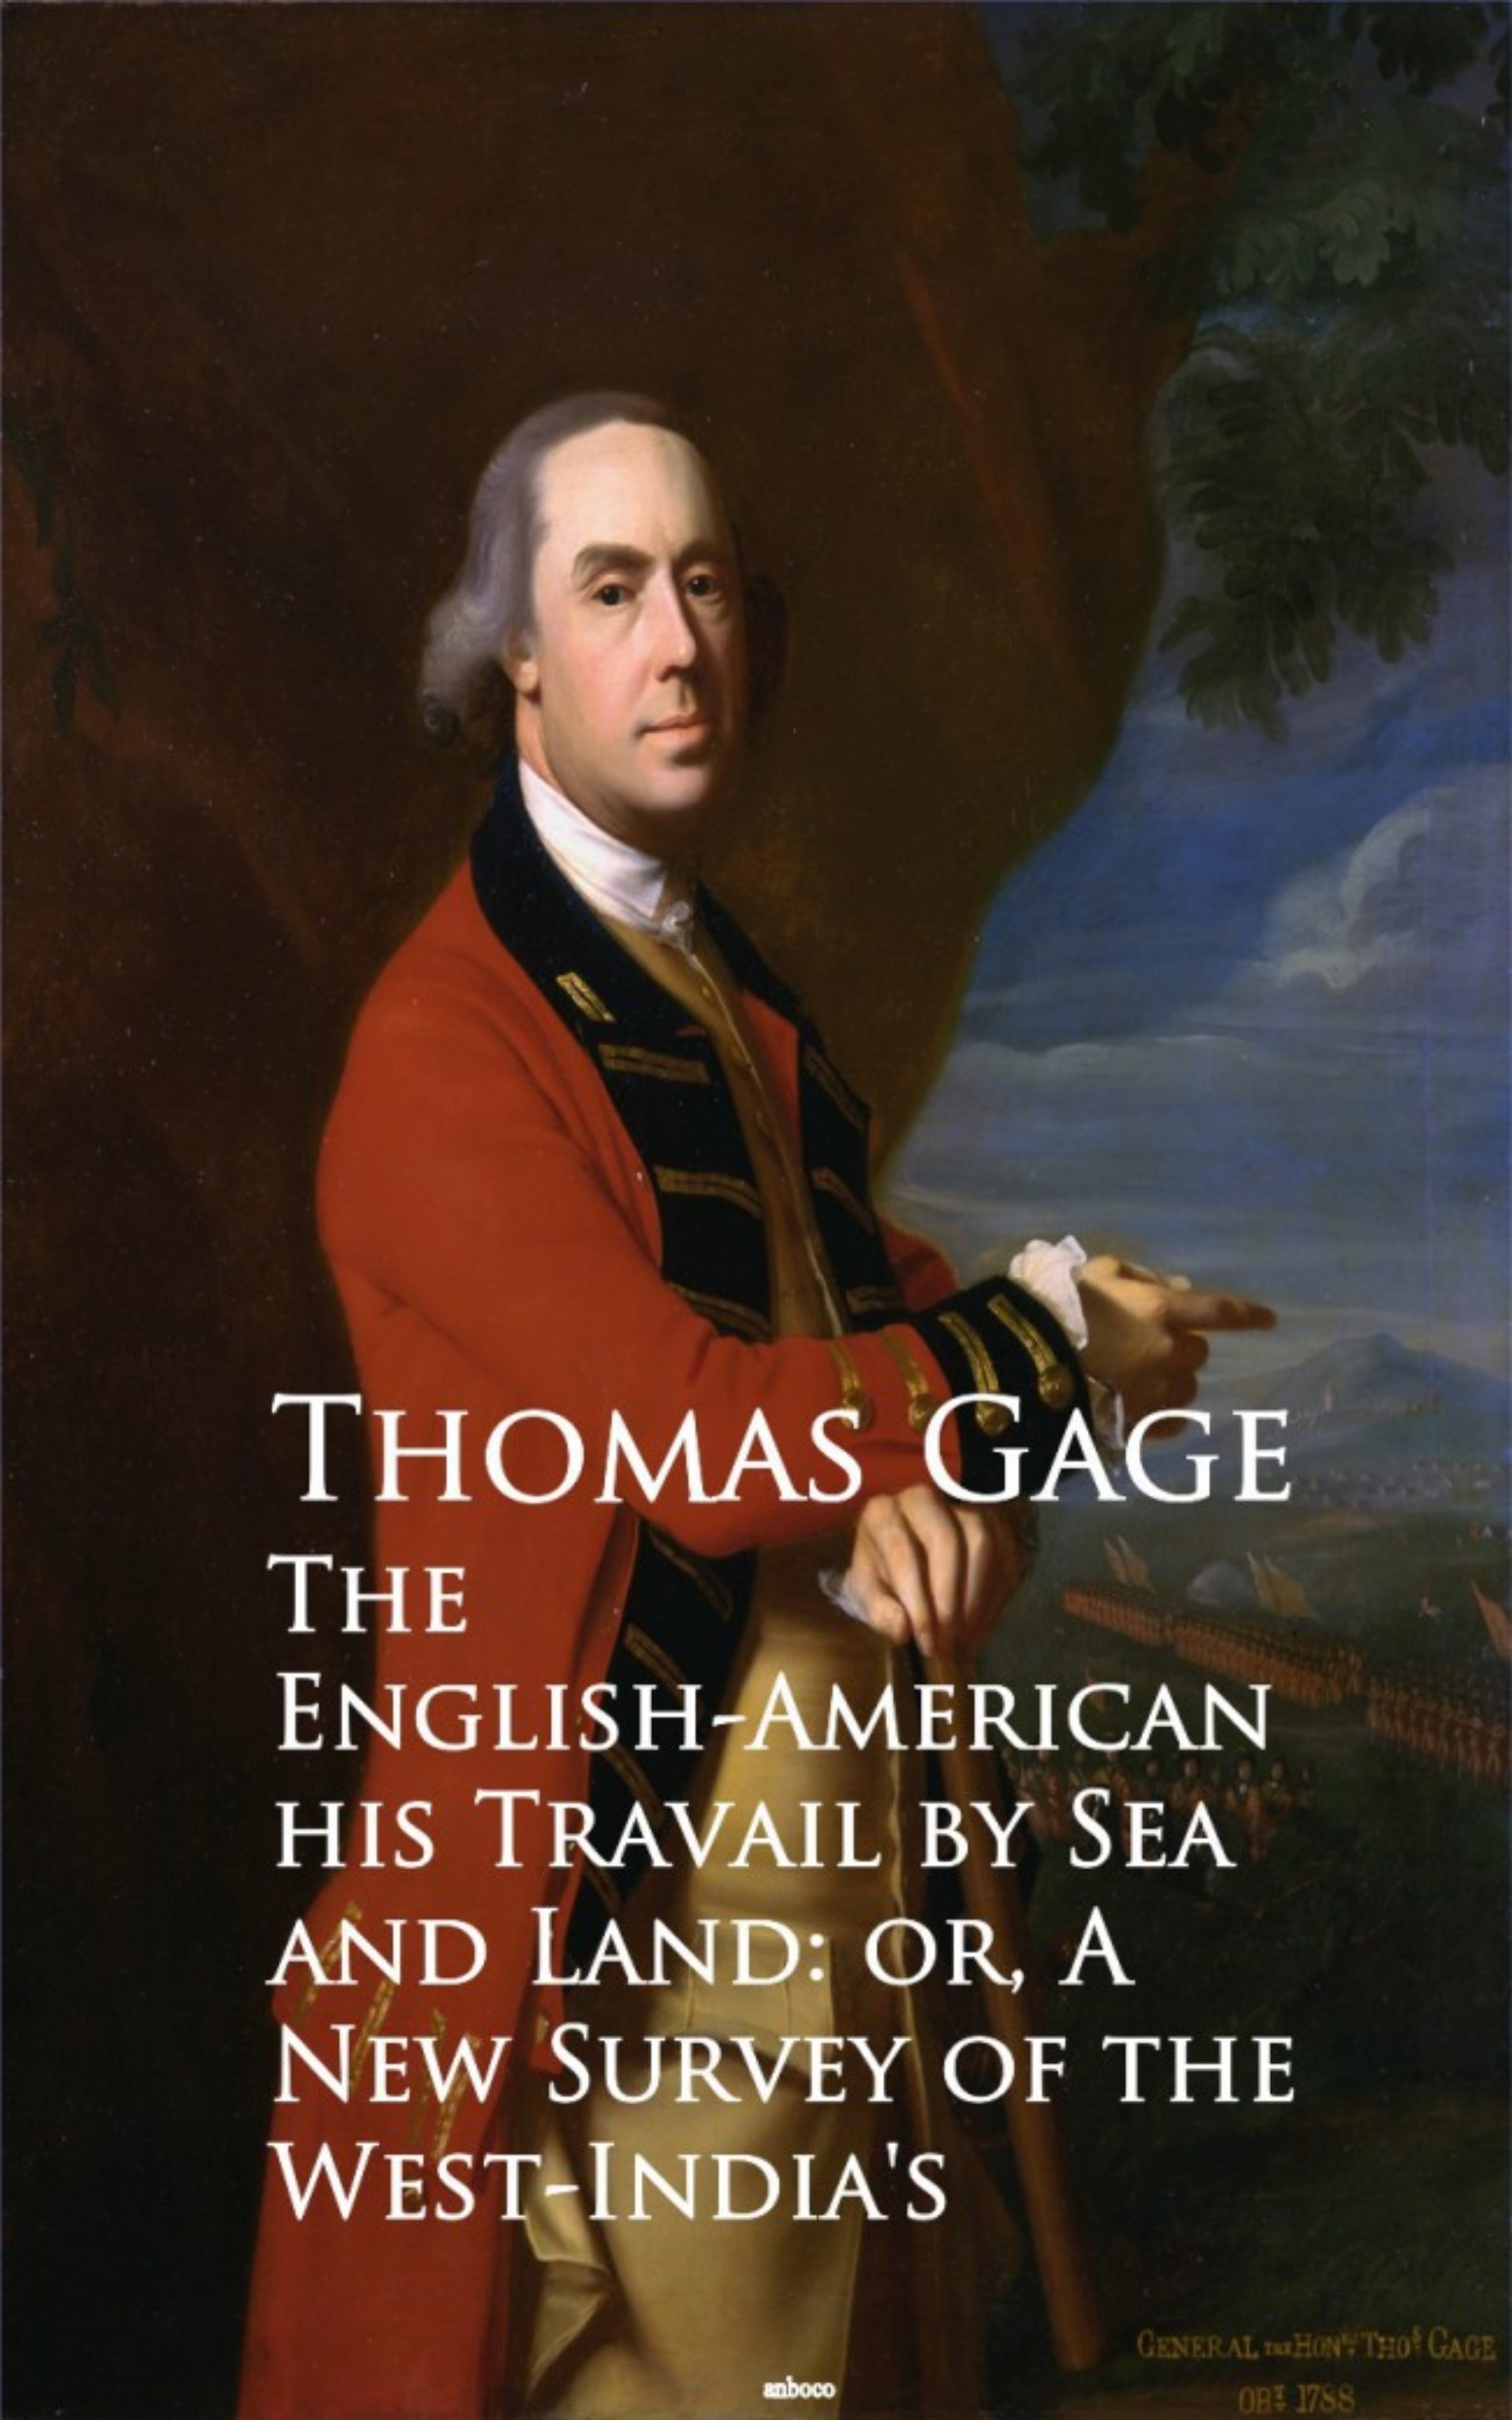 Thomas Gage The English-American - Travel by Sea and Land or A New Survey of the West-India's thomas wyse the continental traveller s oracle or maxims for foreign locomotion by abraham eldon ed by